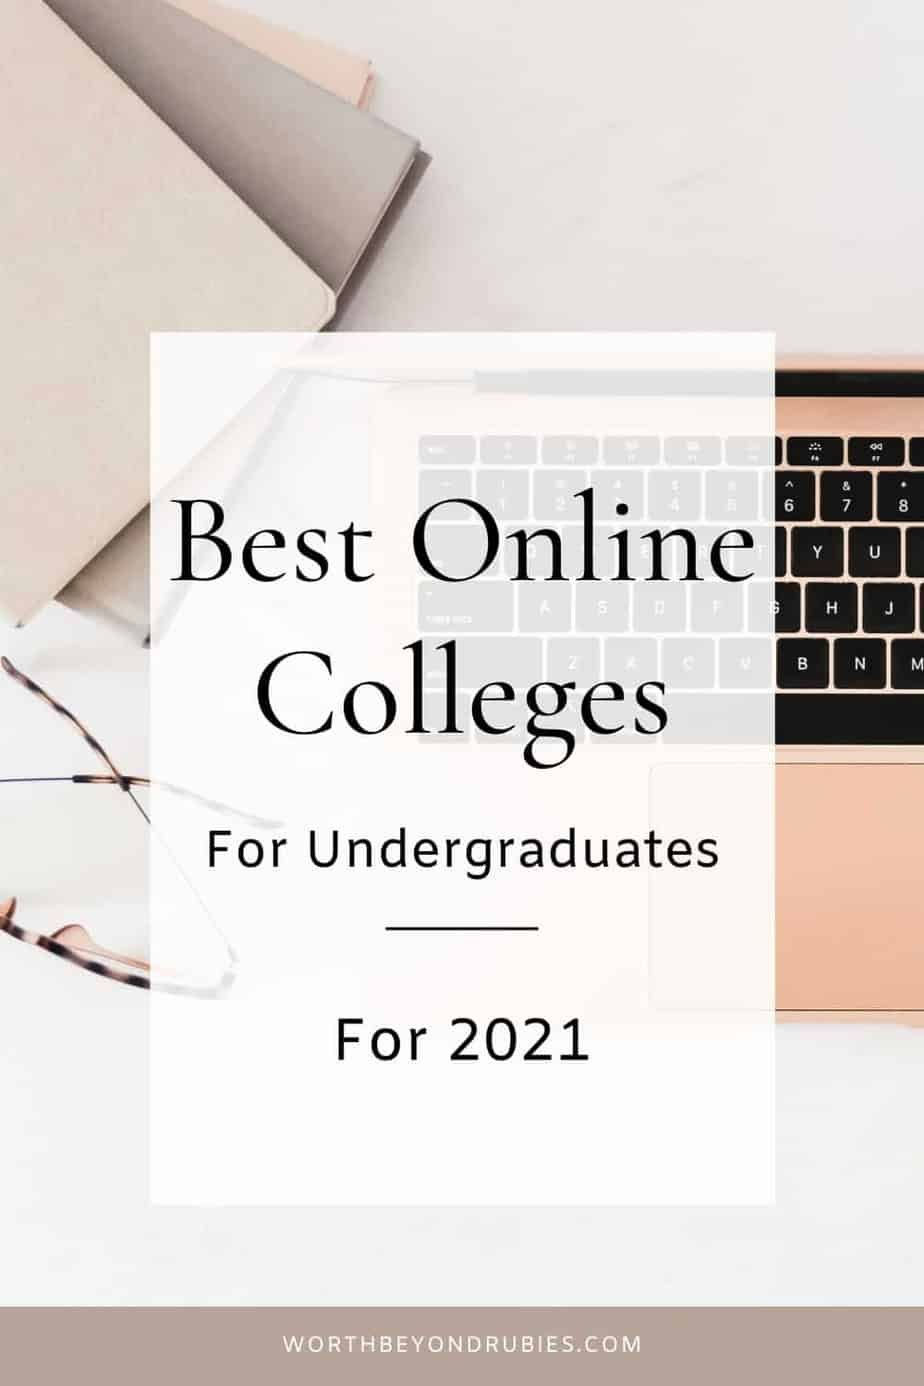 An image of a rose gold macbook on a white desk with a pair of glasses next to it and some notebooks and a text overlay that says Best Online Colleges for Undergraduates for 2021